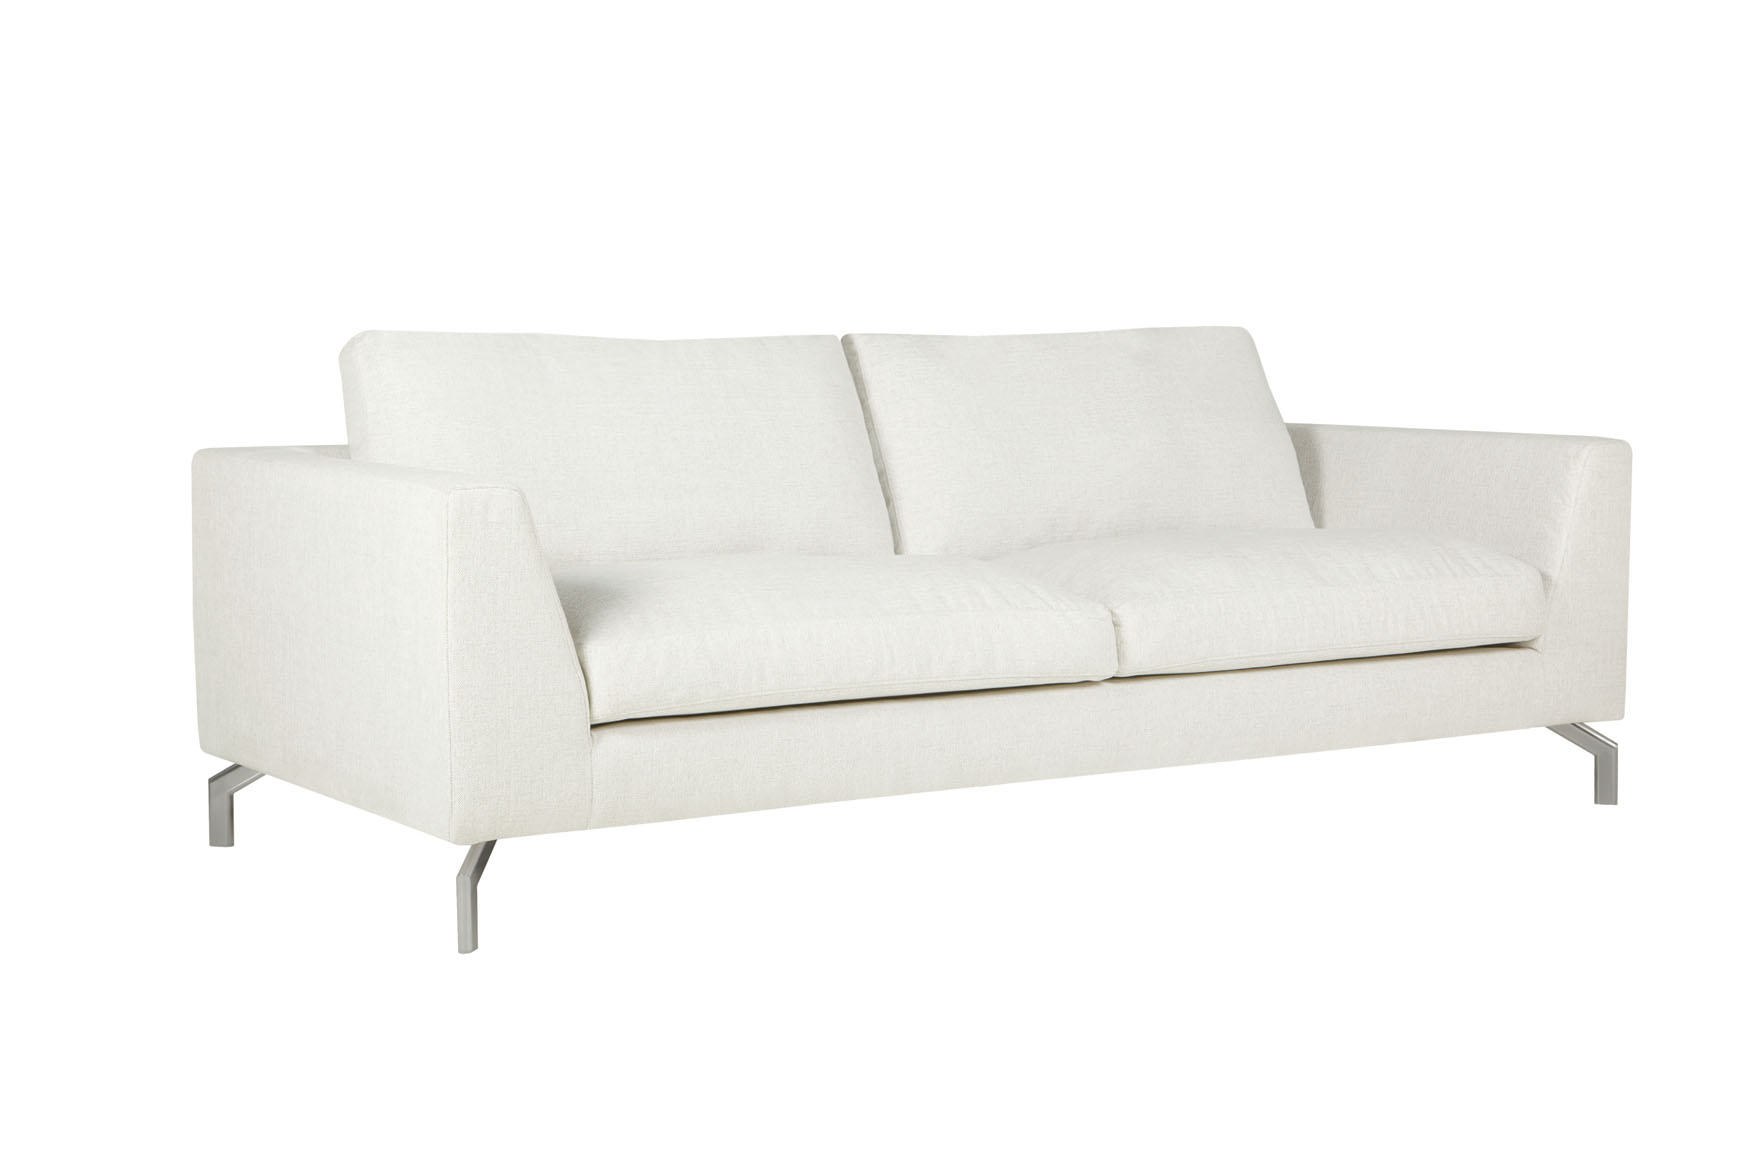 Allegra 3 Seater Sofa-33215